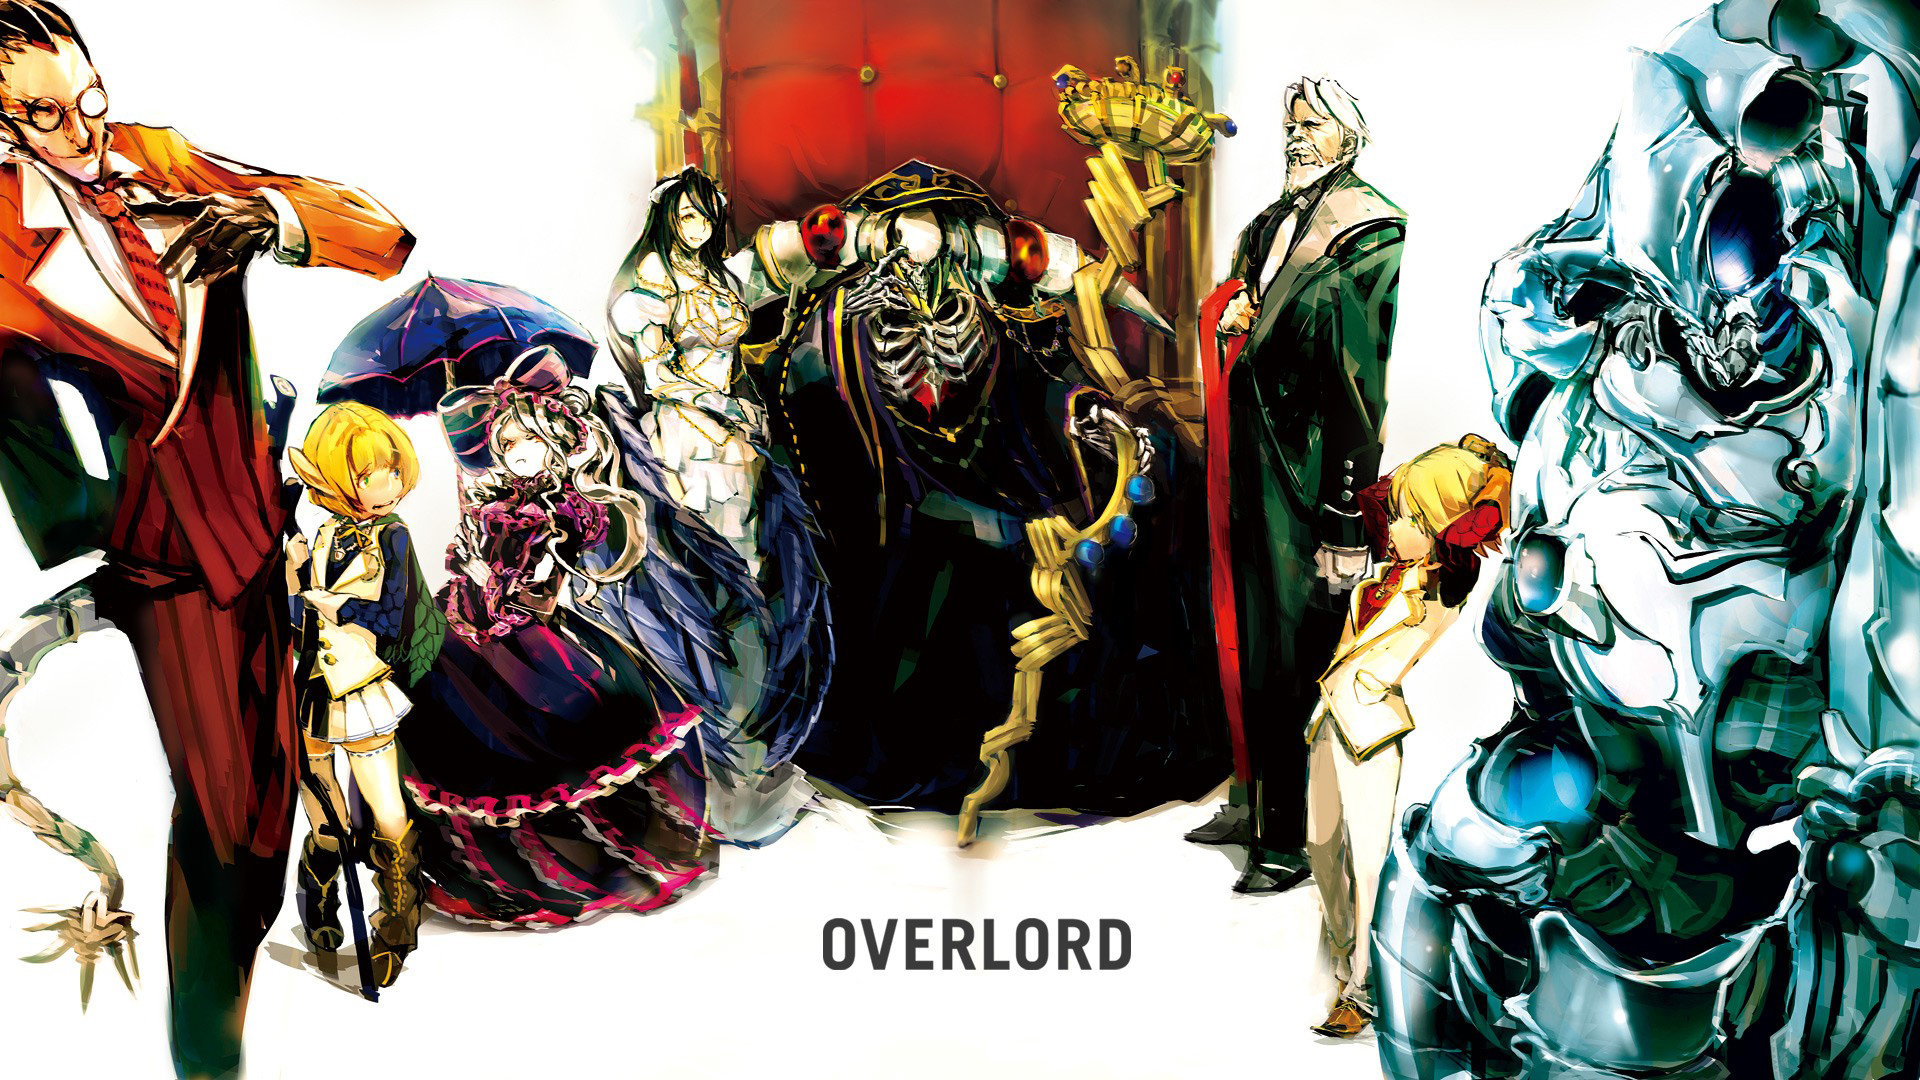 Download hd 1920x1080 Overlord PC wallpaper ID:275929 for free